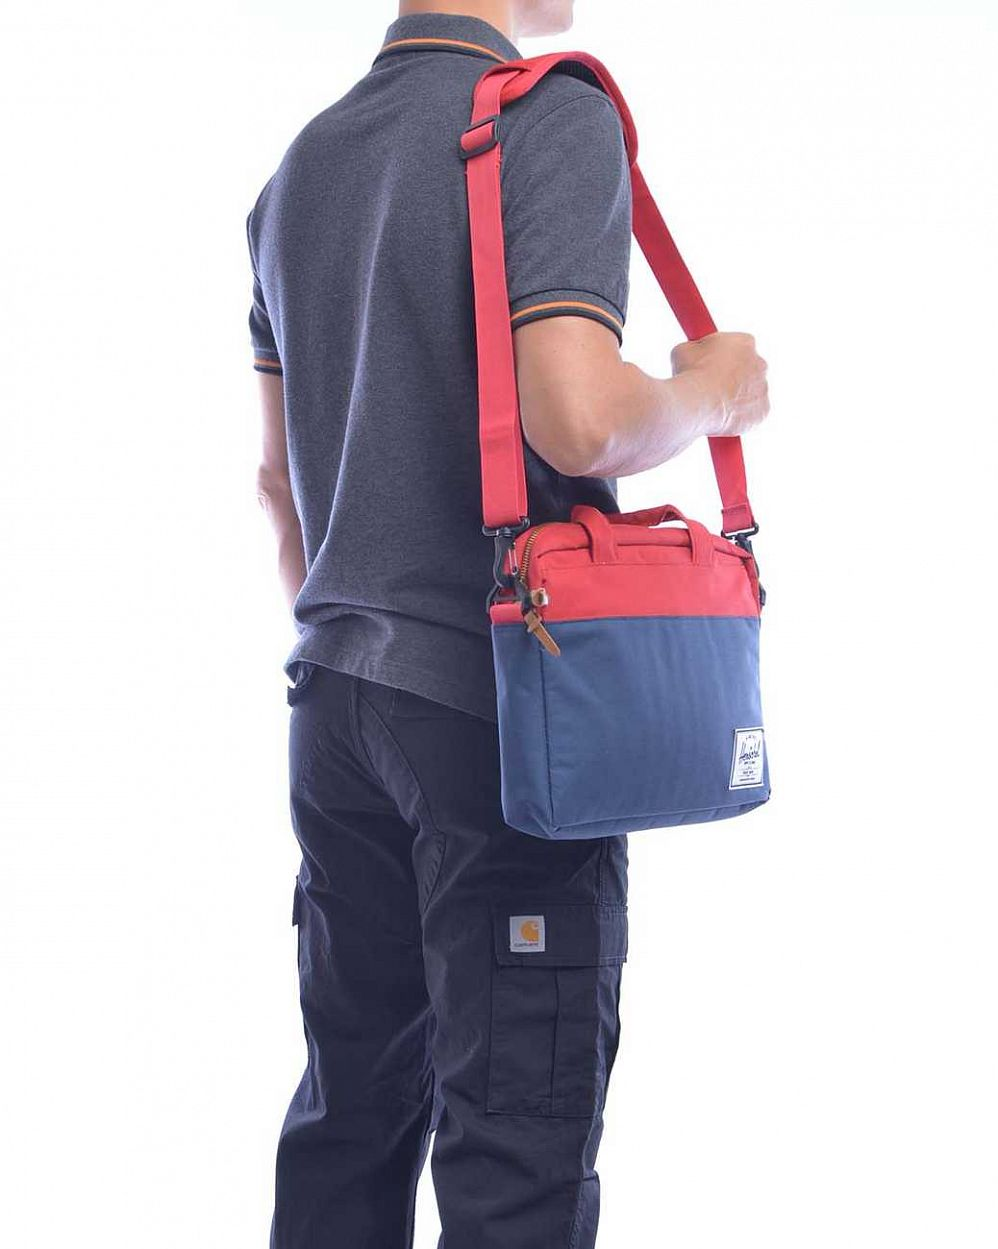 Сумка Herschel Hudson Rust Copper Navy в розницу